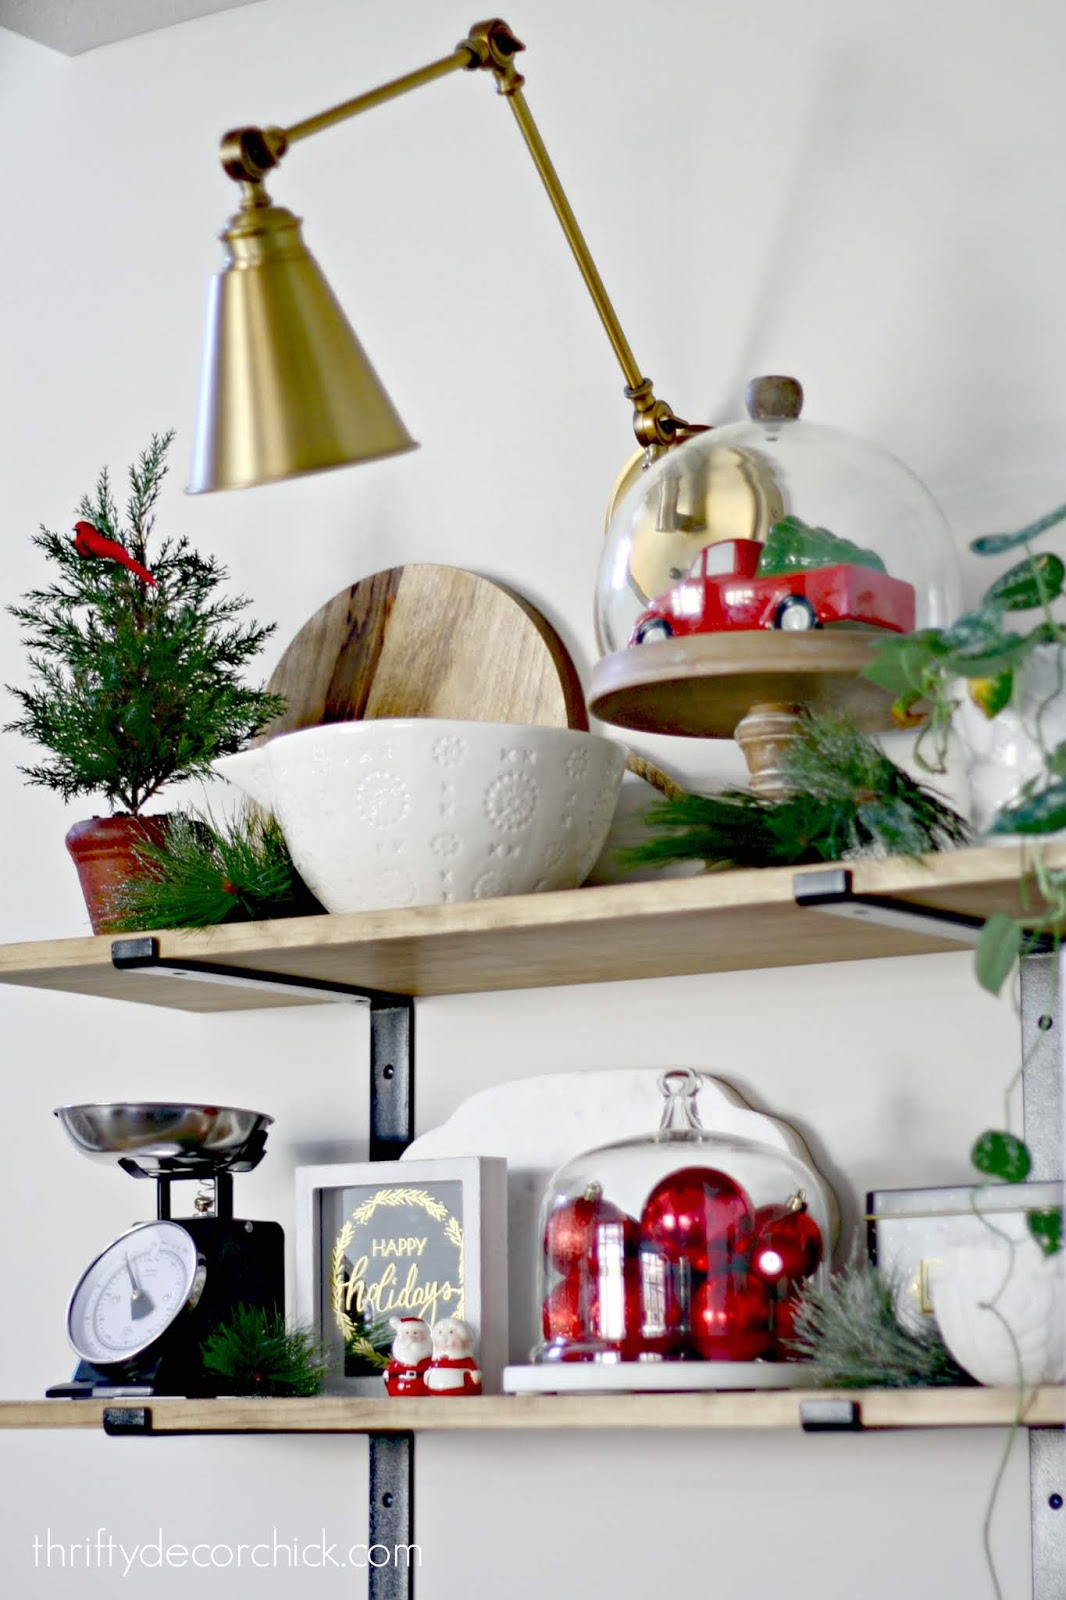 Decorating kitchen shelves for Christmas